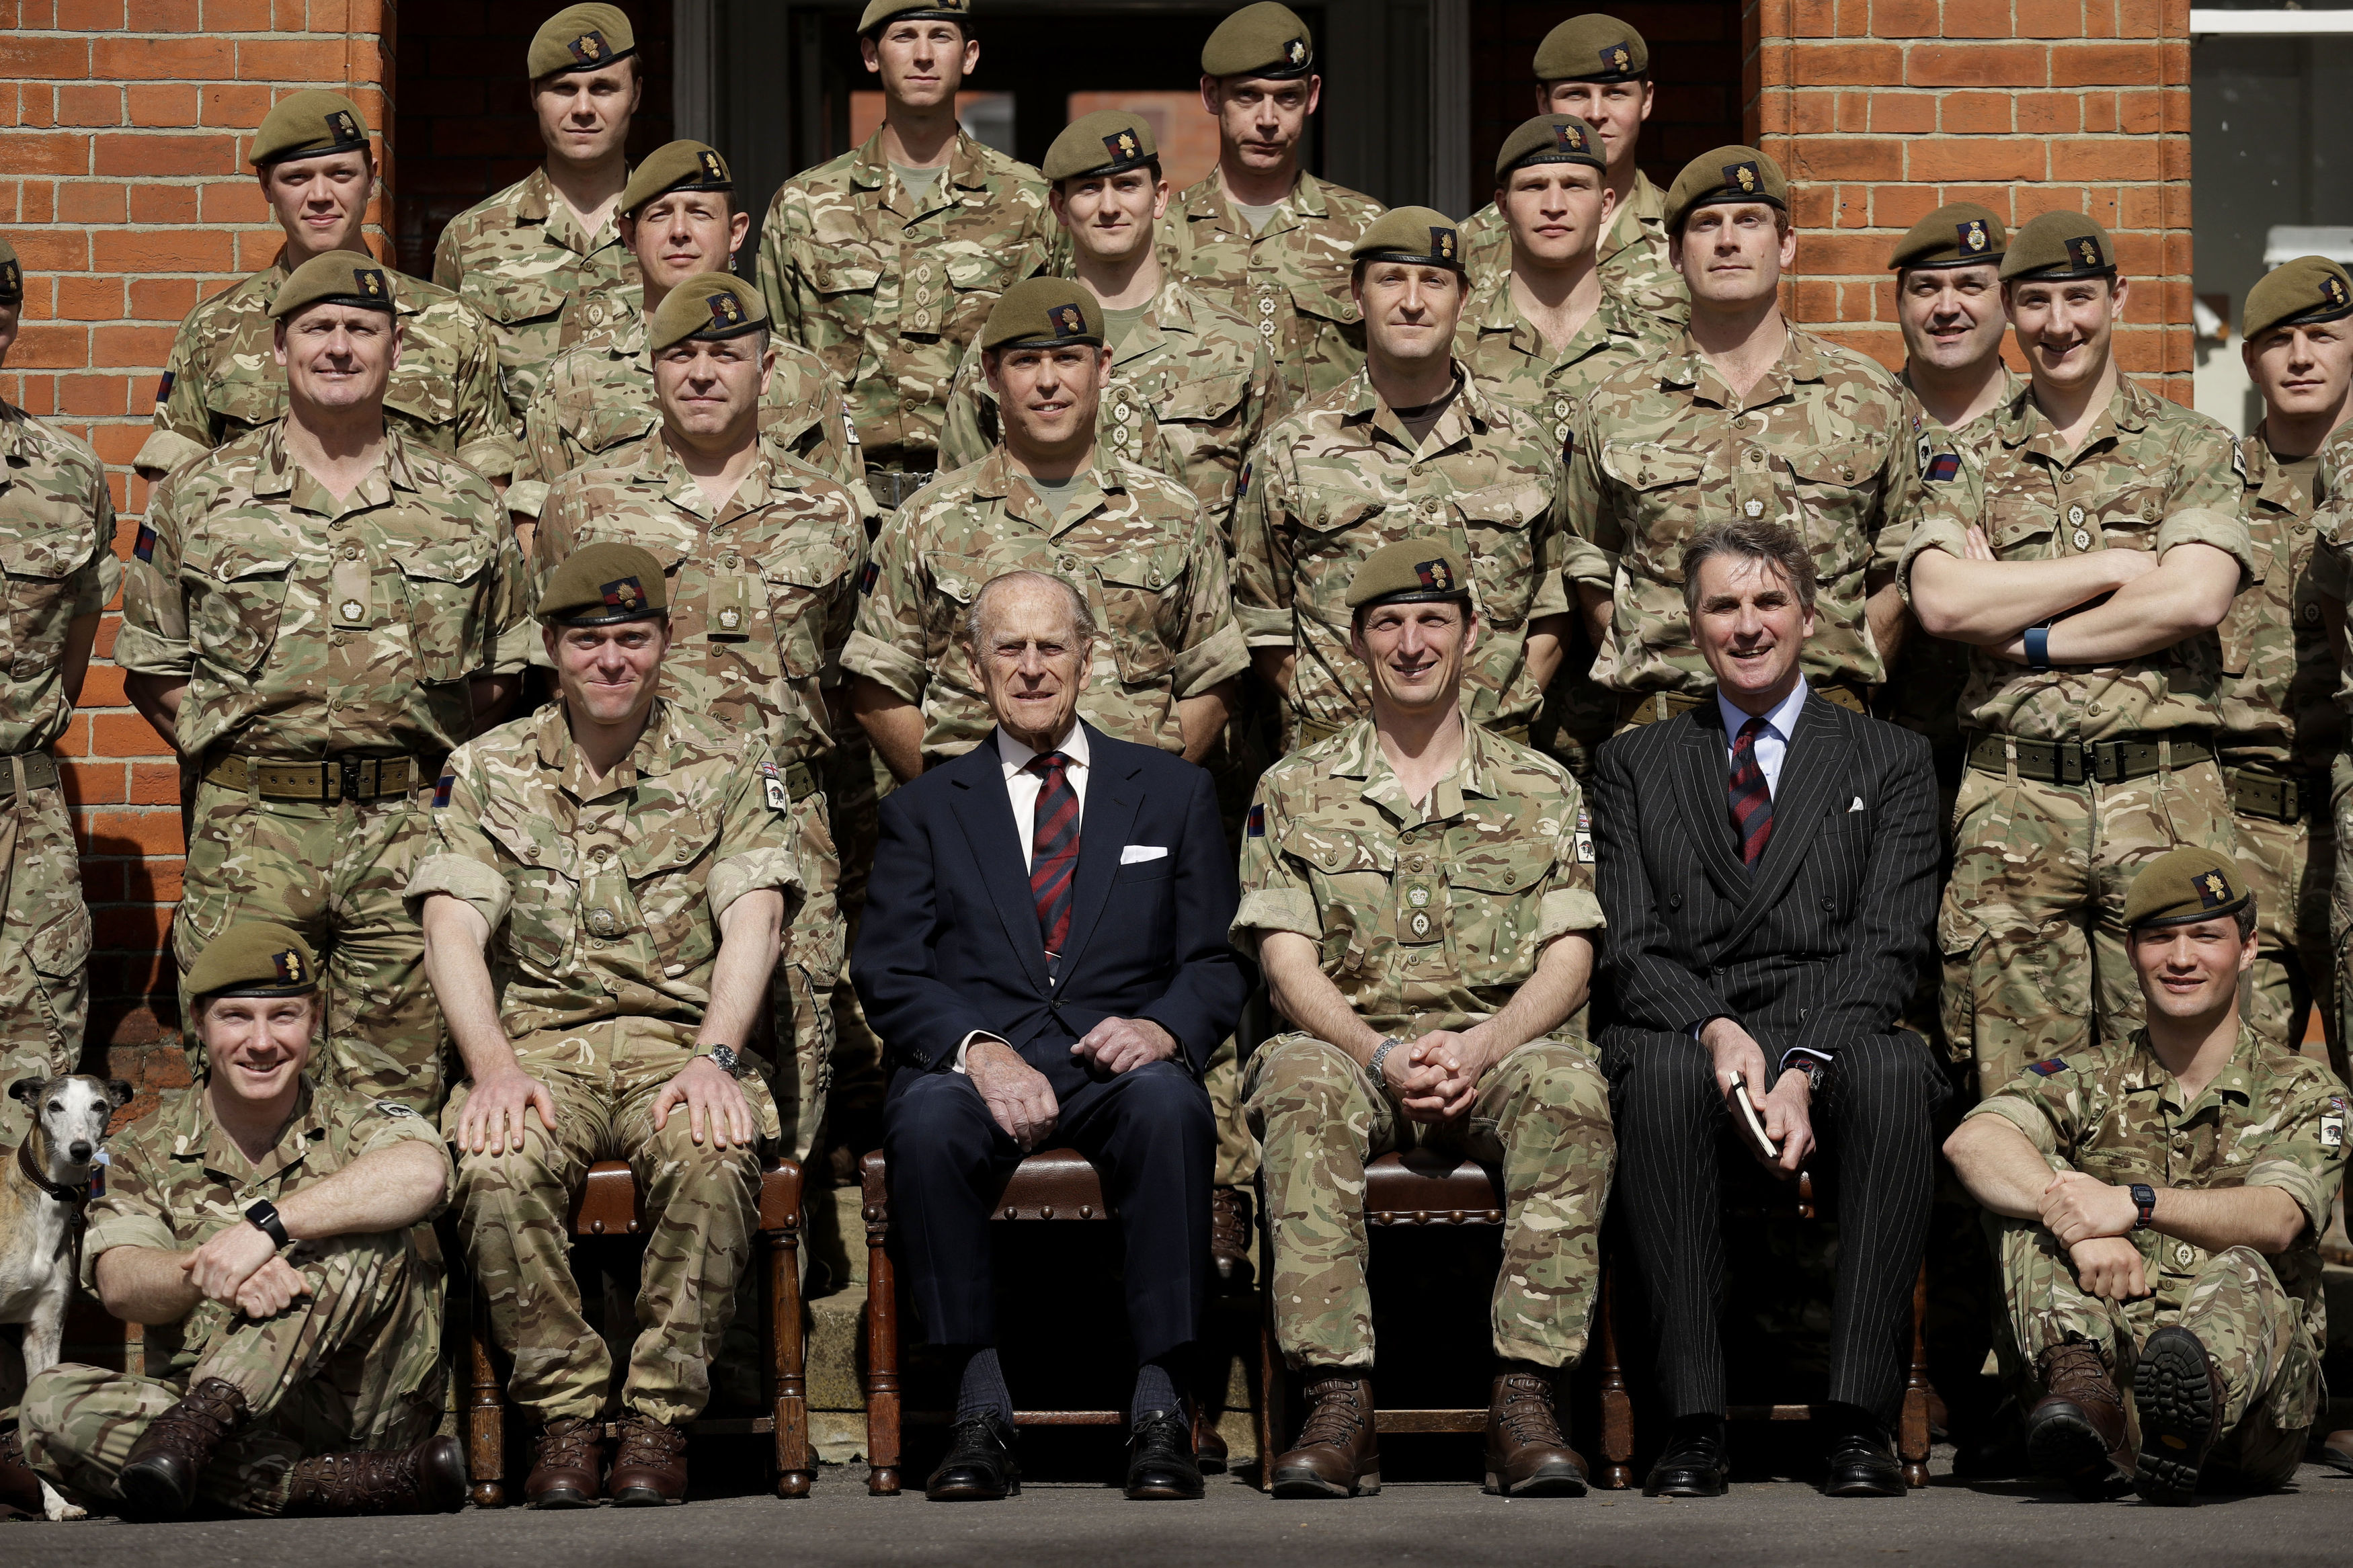 The Duke of Edinburgh poses for a group photo with the Grenadier Guards